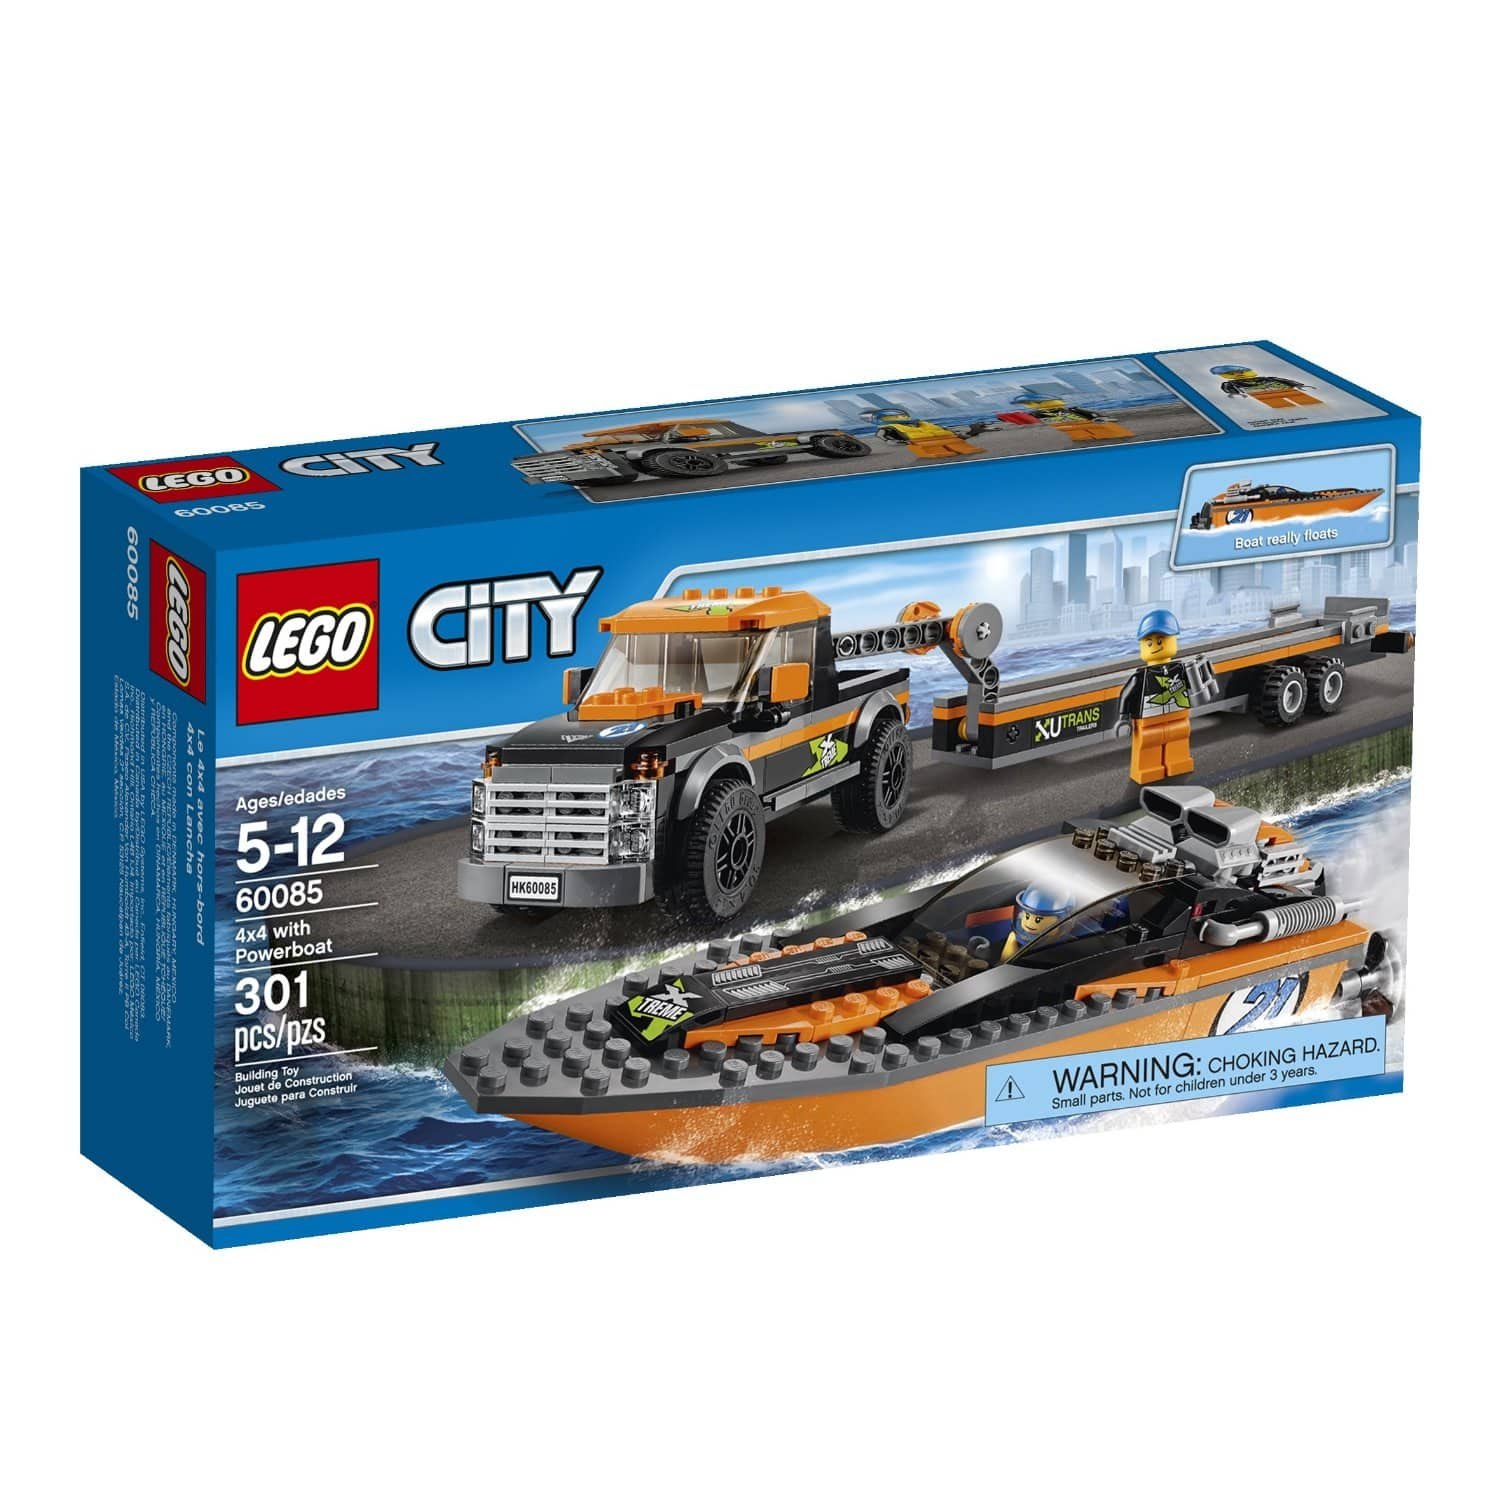 LEGO City: Great Vehicles 4x4 with Powerboat (301-Pieces)  $18 + Free Store Pickup